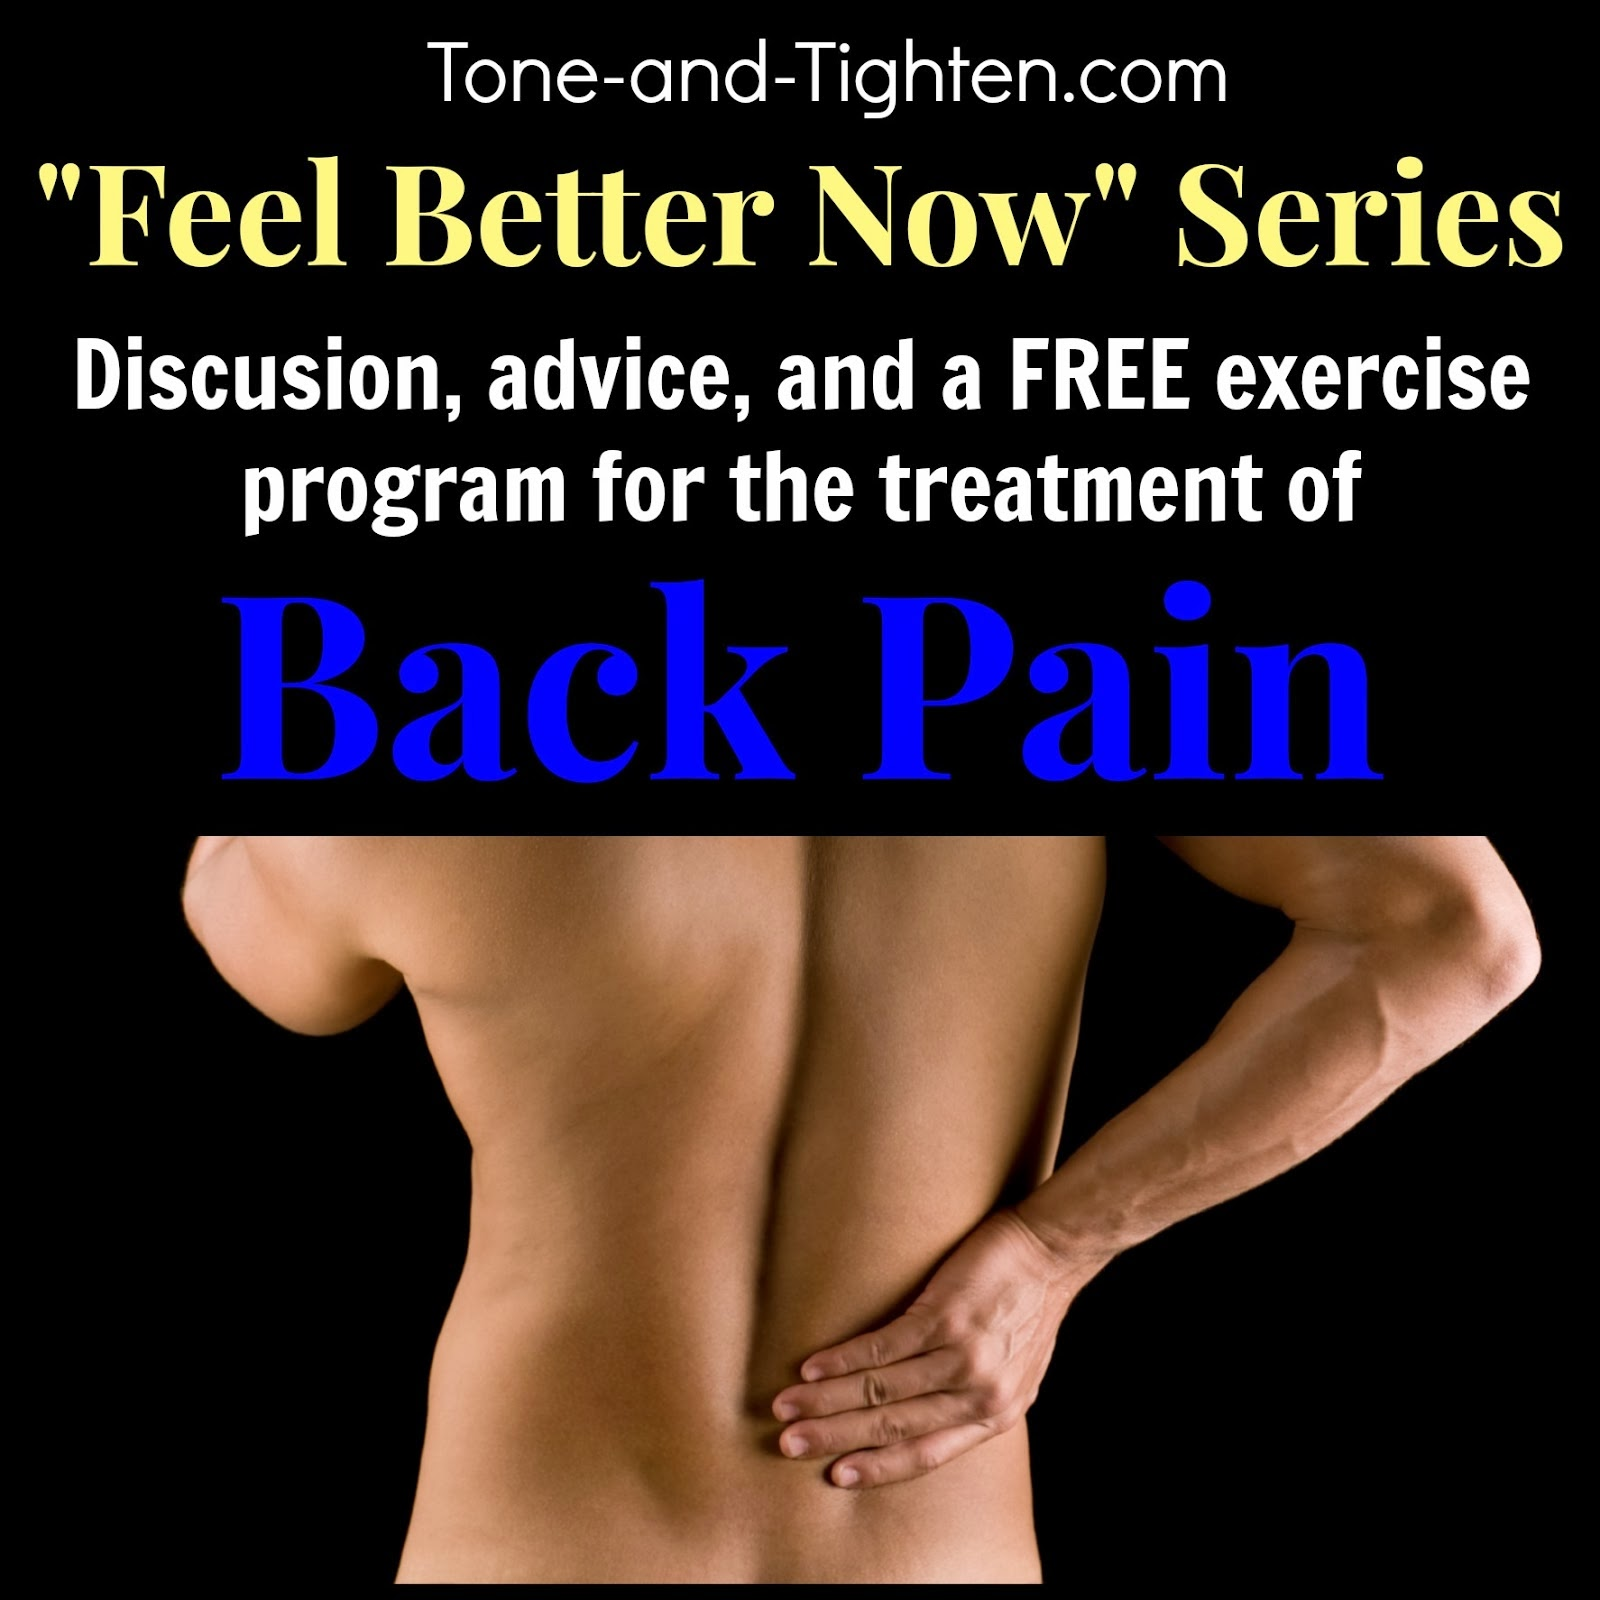 https://tone-and-tighten.com/2014/02/new-feel-better-now-series-how-to-treat-low-back-pain.html